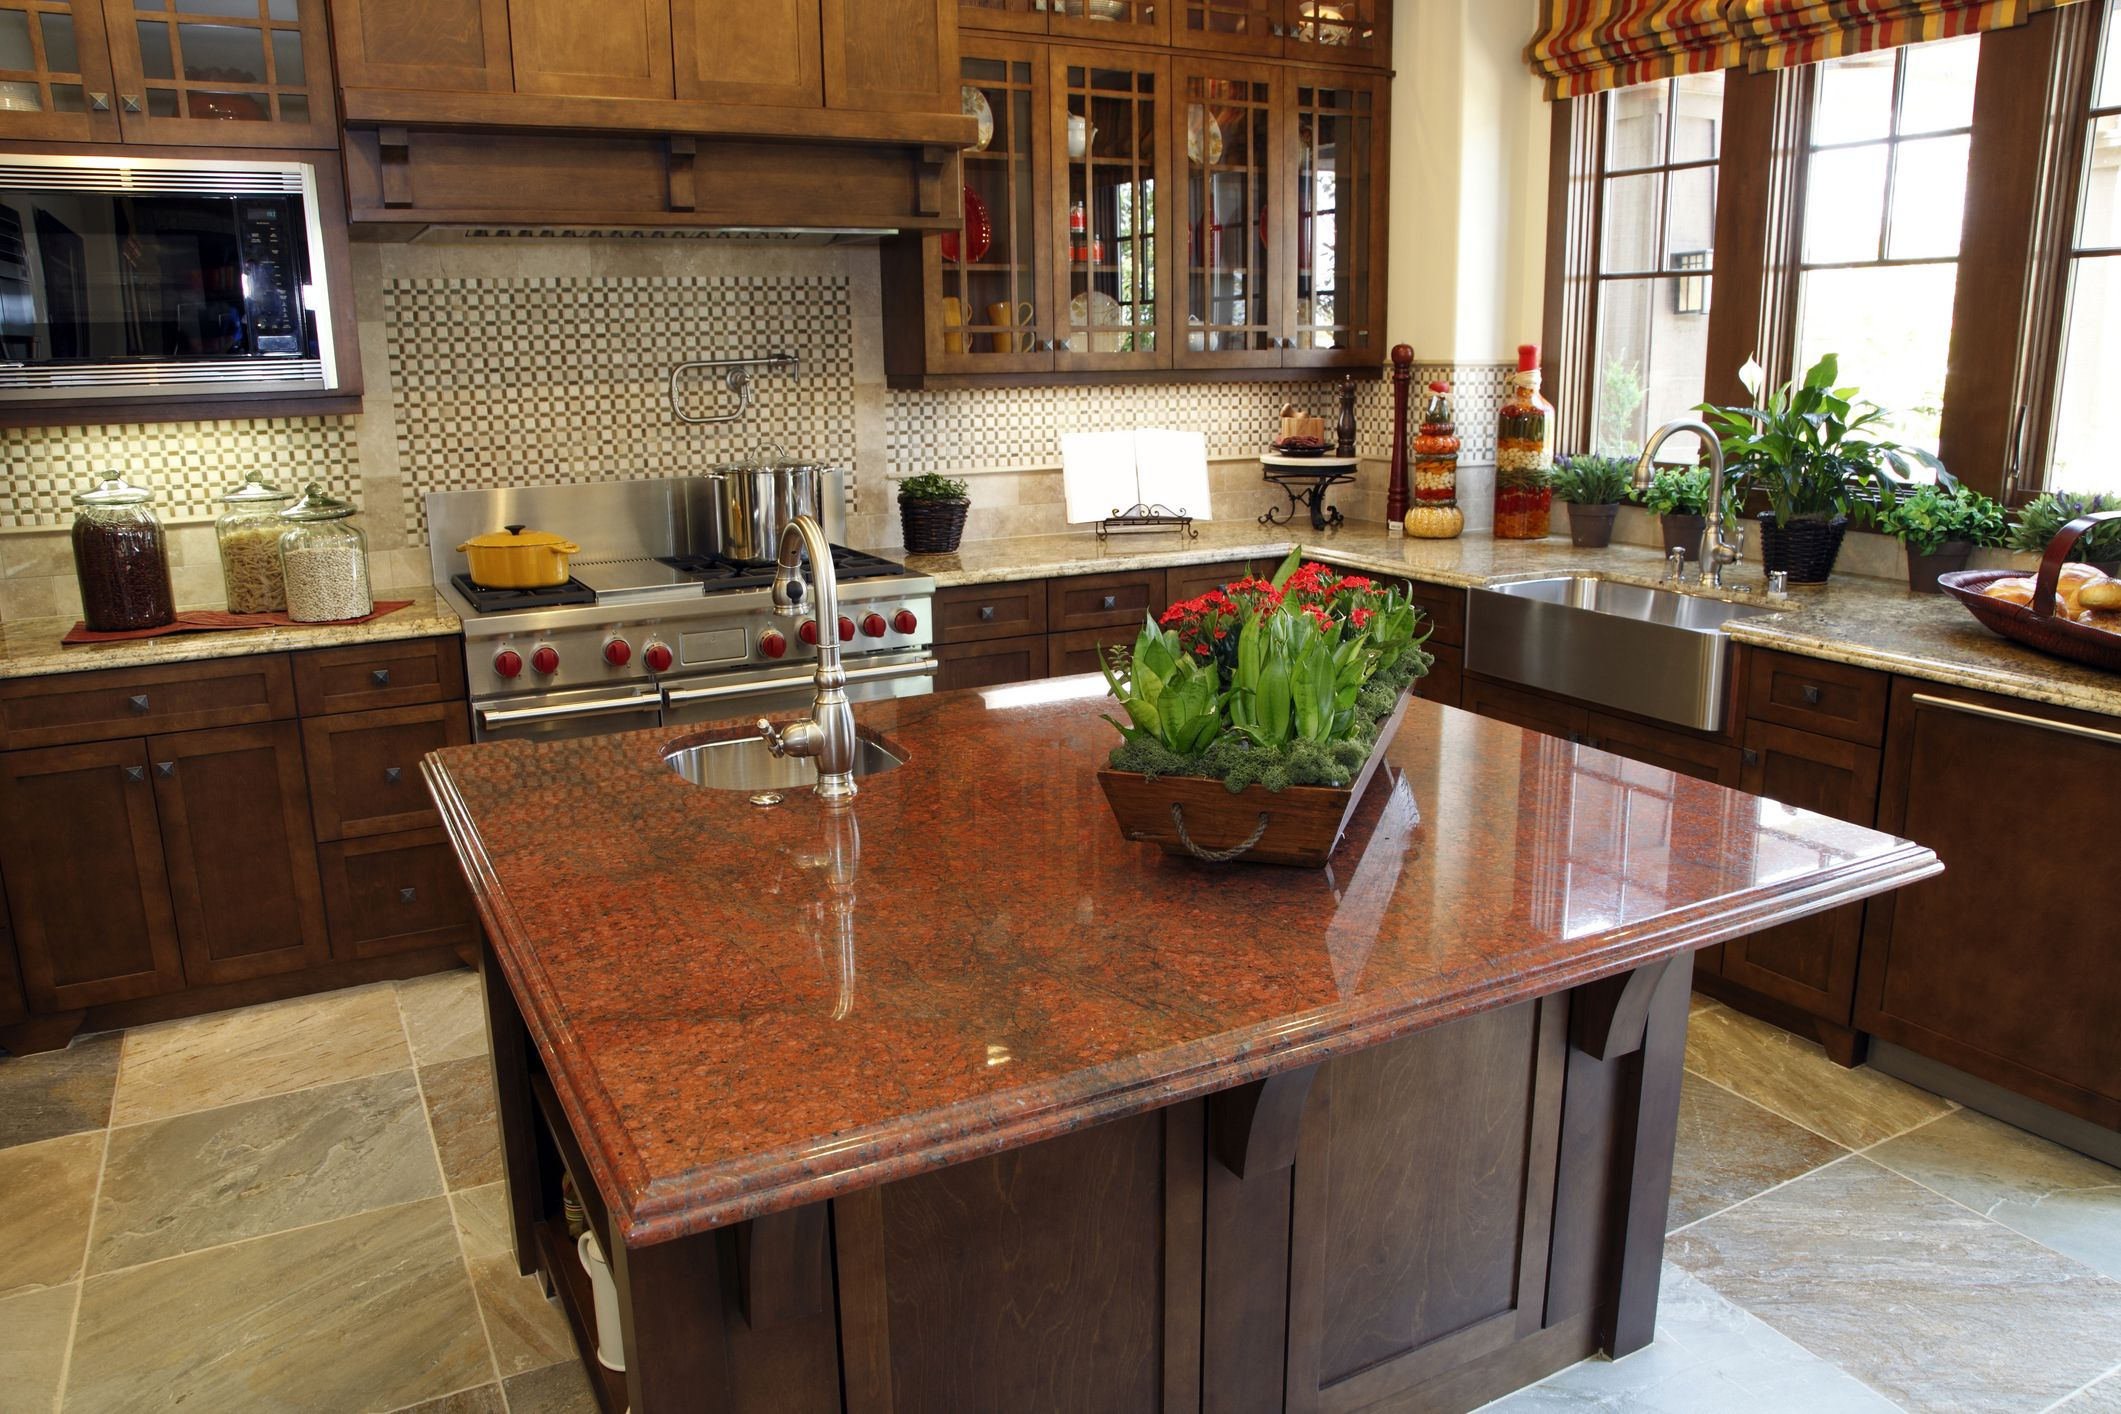 Kitchen Cabinet Refacing White Gray Floor Pepper